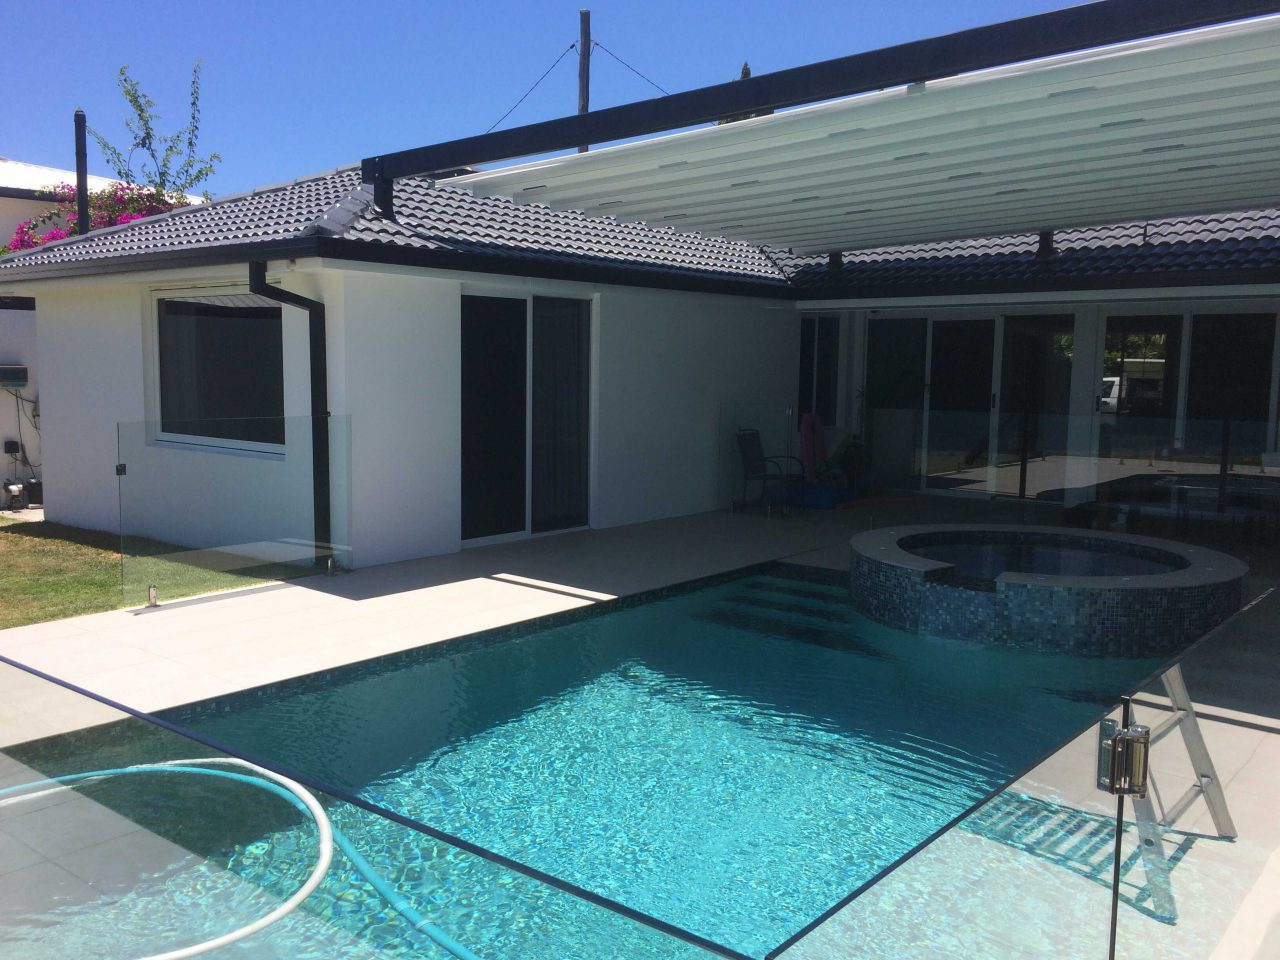 Gold Coast Canal Home - Retractable Roof - Awning Worx